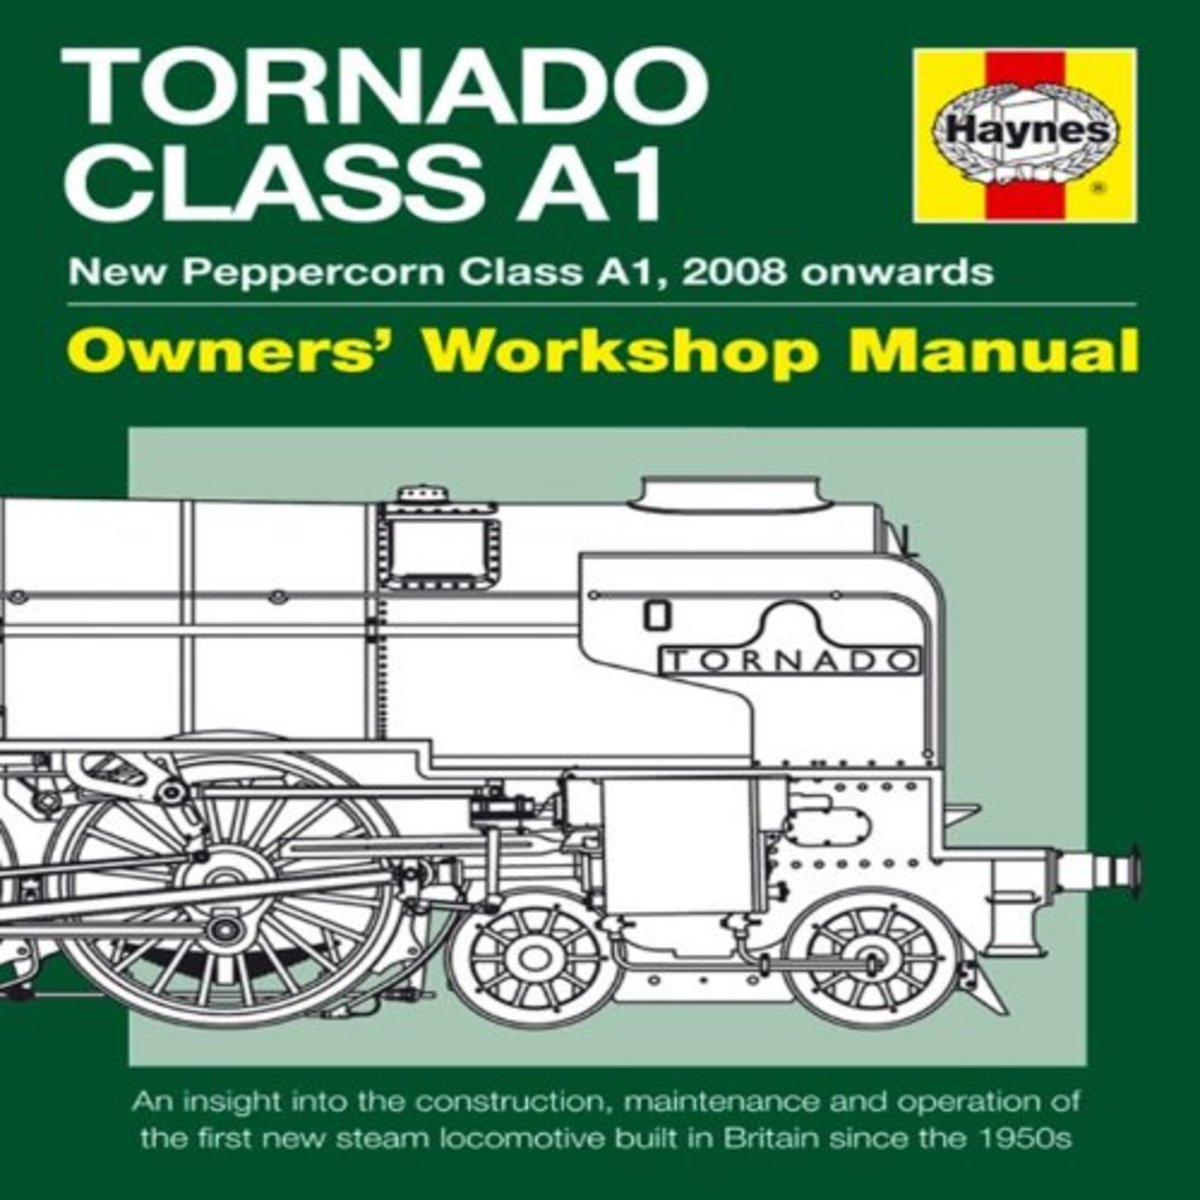 It's said that there's a Haynes Manual for everything on wheels... Here's a 'tongue-in-cheek' edition for 'Tornado', published by Hsynes soon after completion